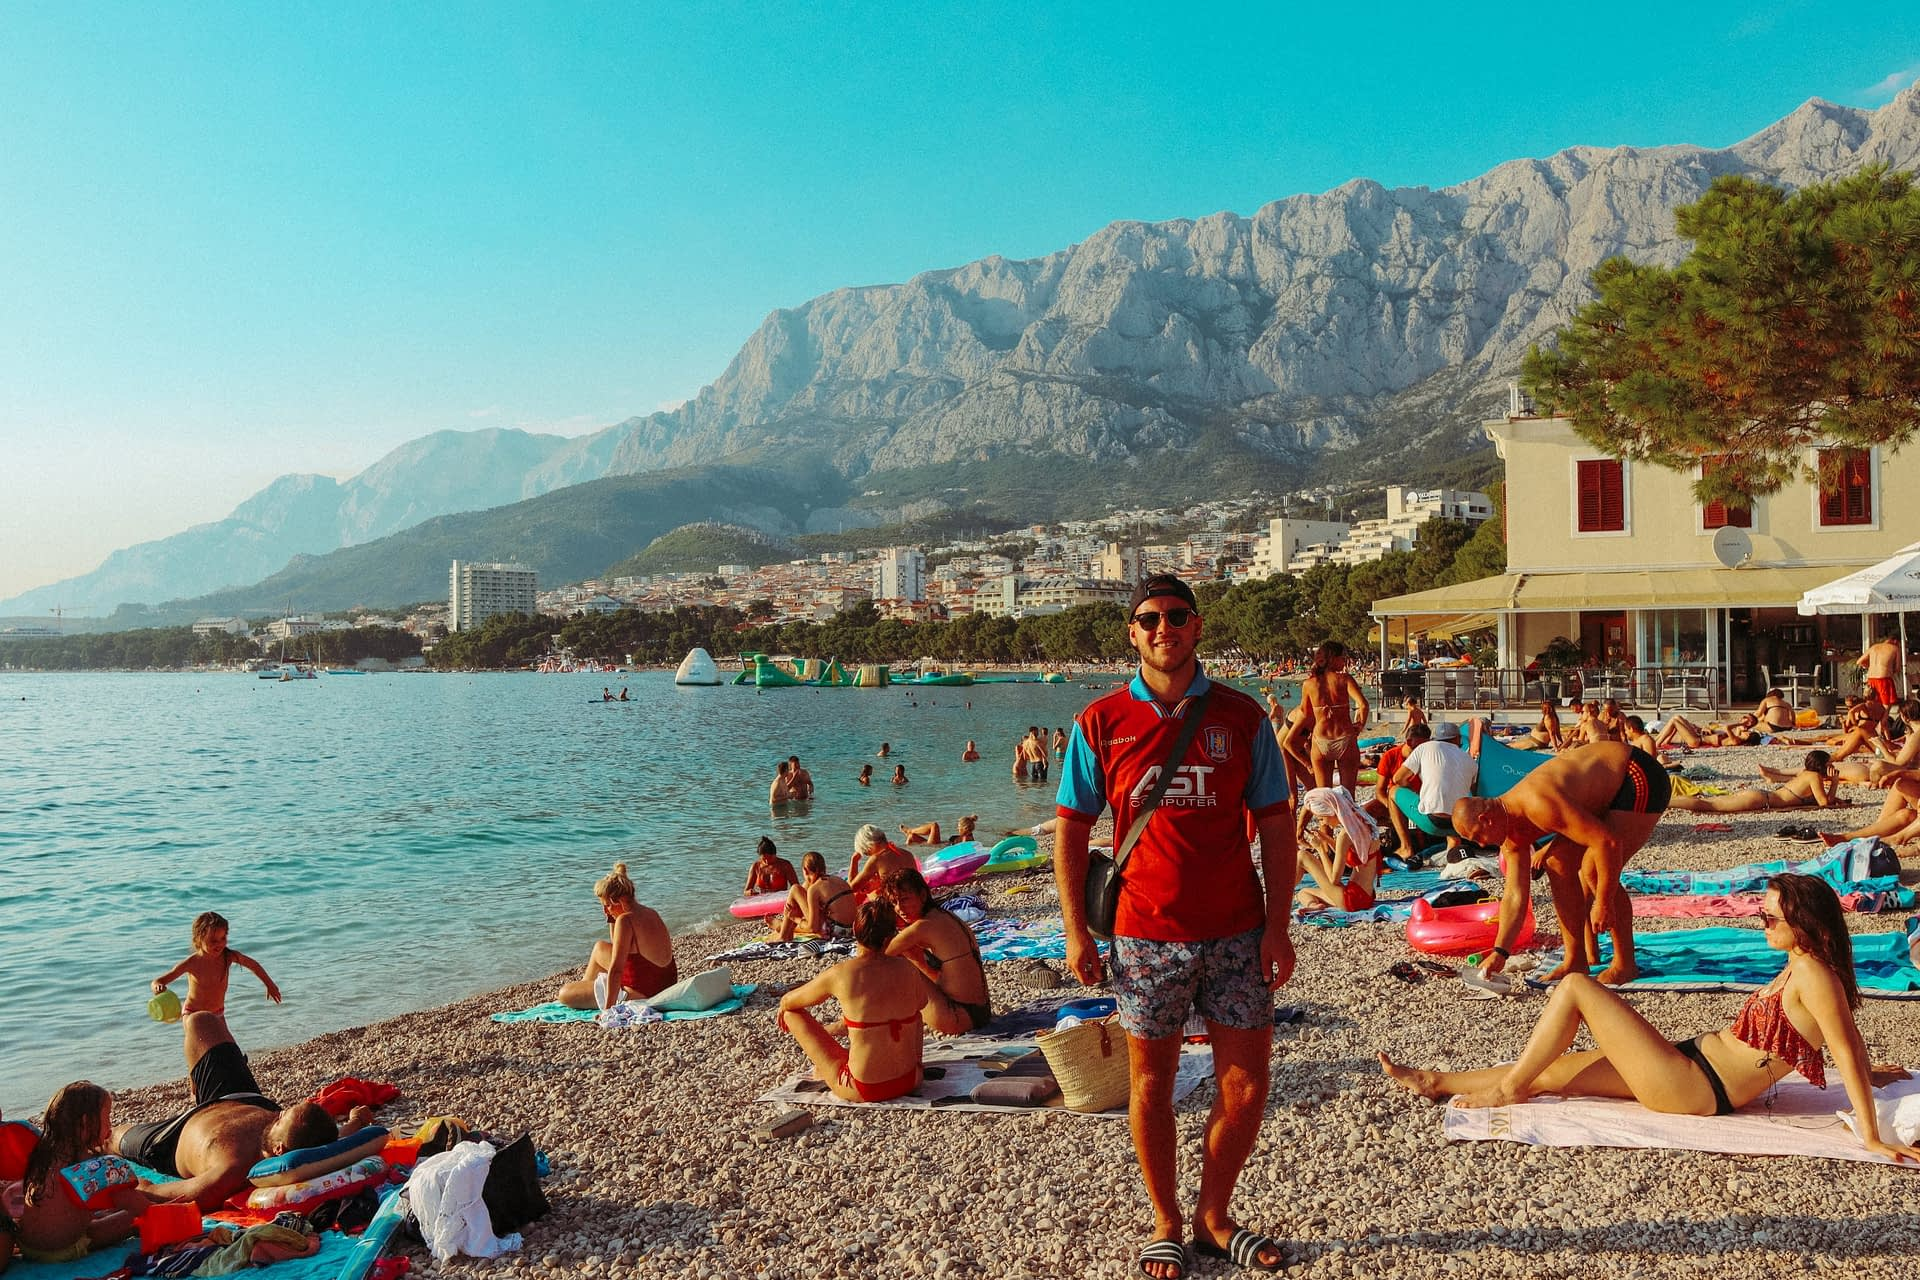 A man stood on a busy pebble beach with Mount Biokovo in the background. Things to see in Makarska